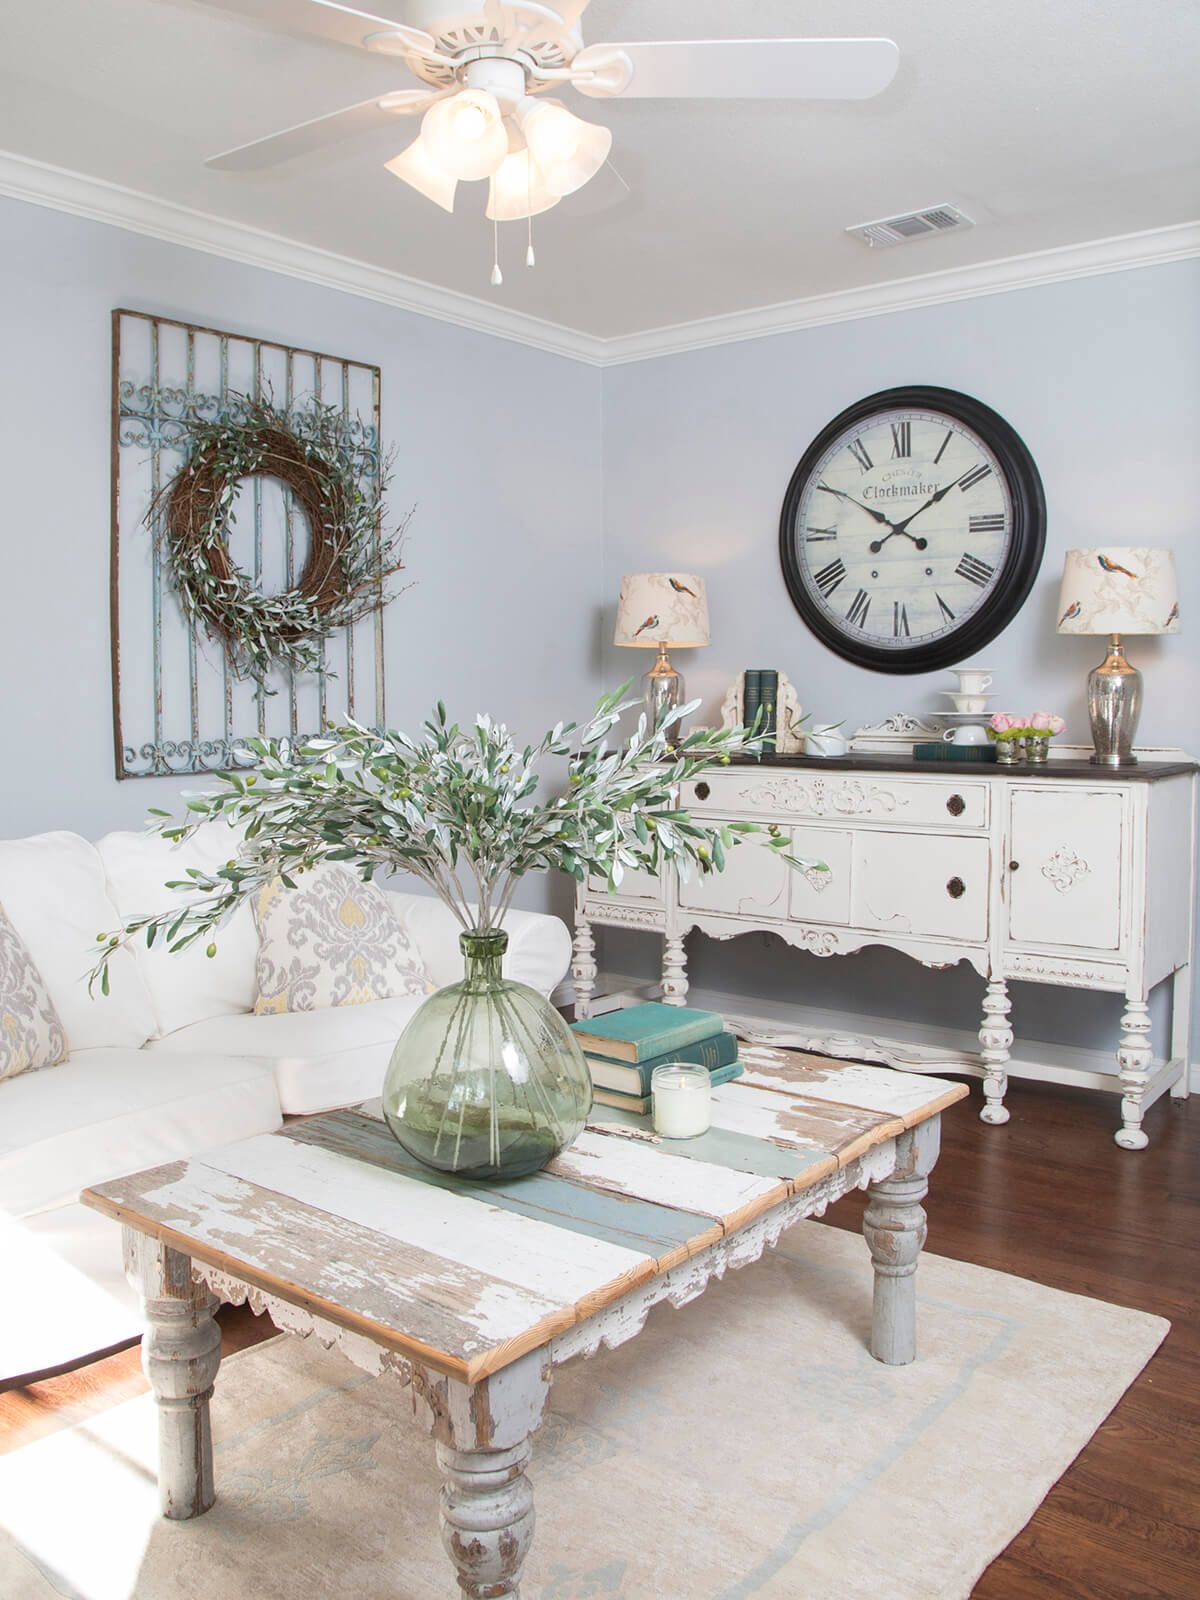 Charming French Country Decor Ideas With Timeless Appeal - Charming french country decor